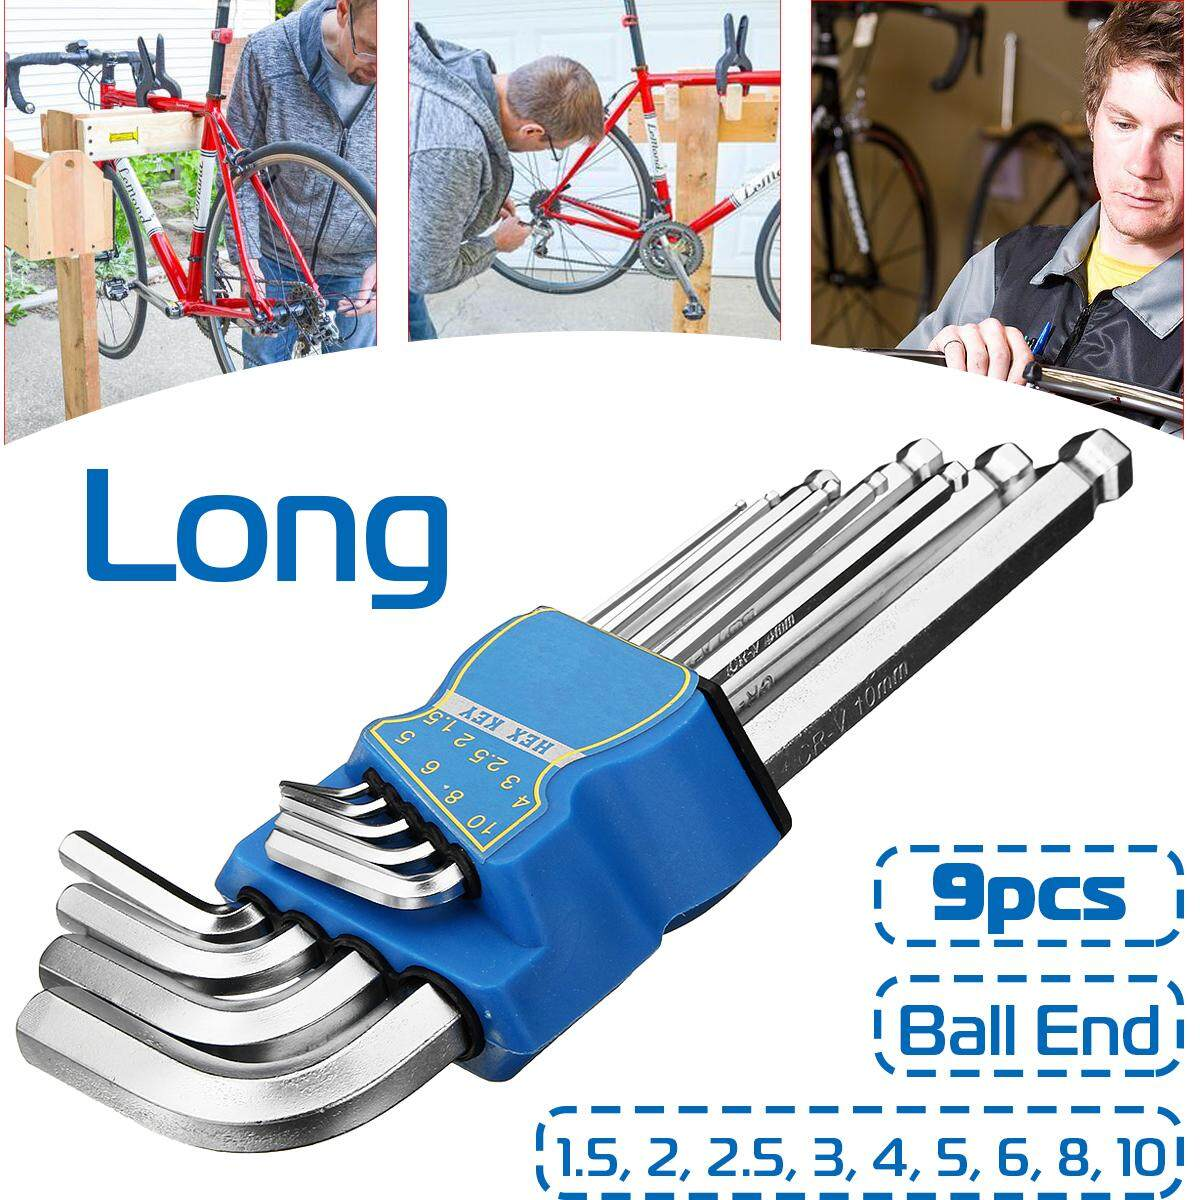 9pcs L Wrench Ball End Long Arm Hex Key Allen Wrench Set Powerful Repair Tool